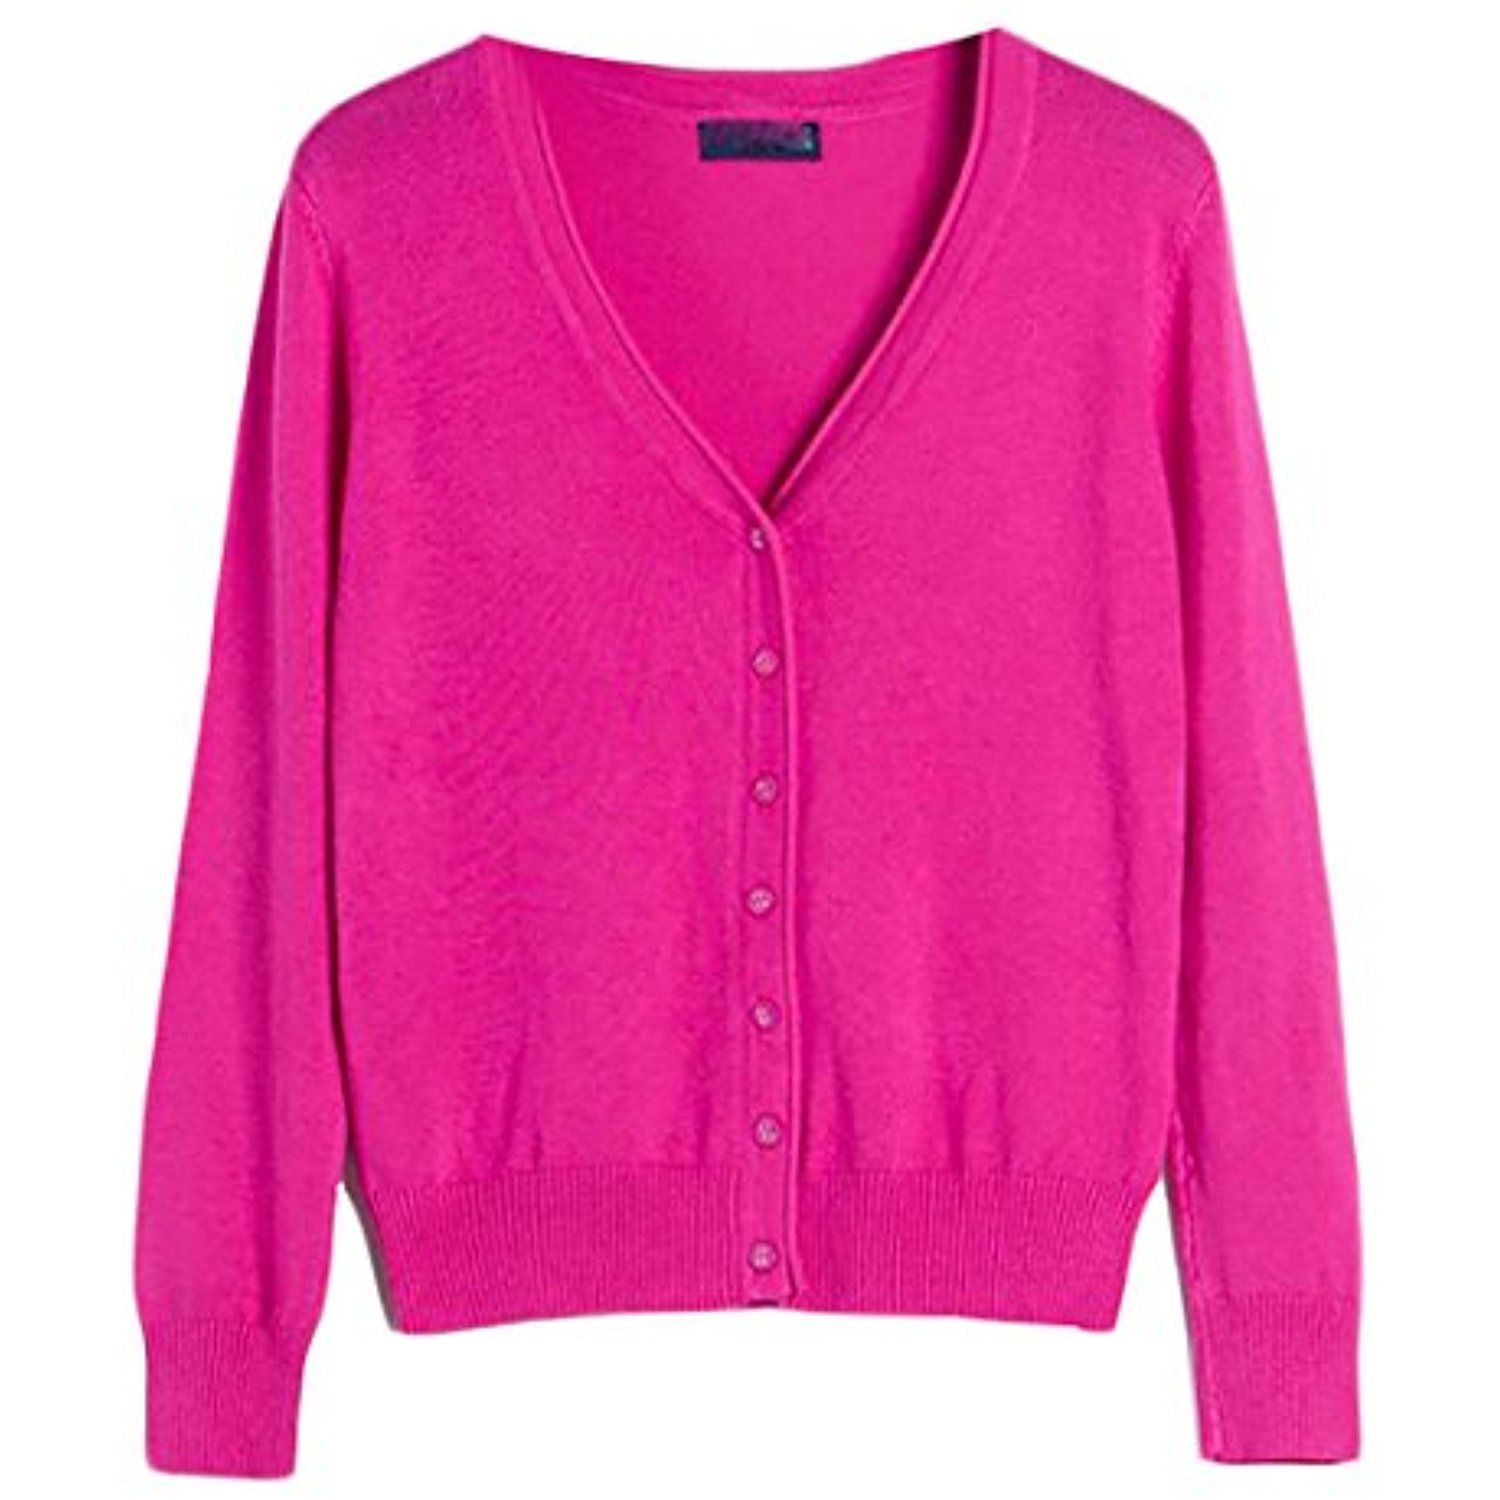 Women's Long Sleeve V-Neck Button Down Knit Cardigan Sweater ...